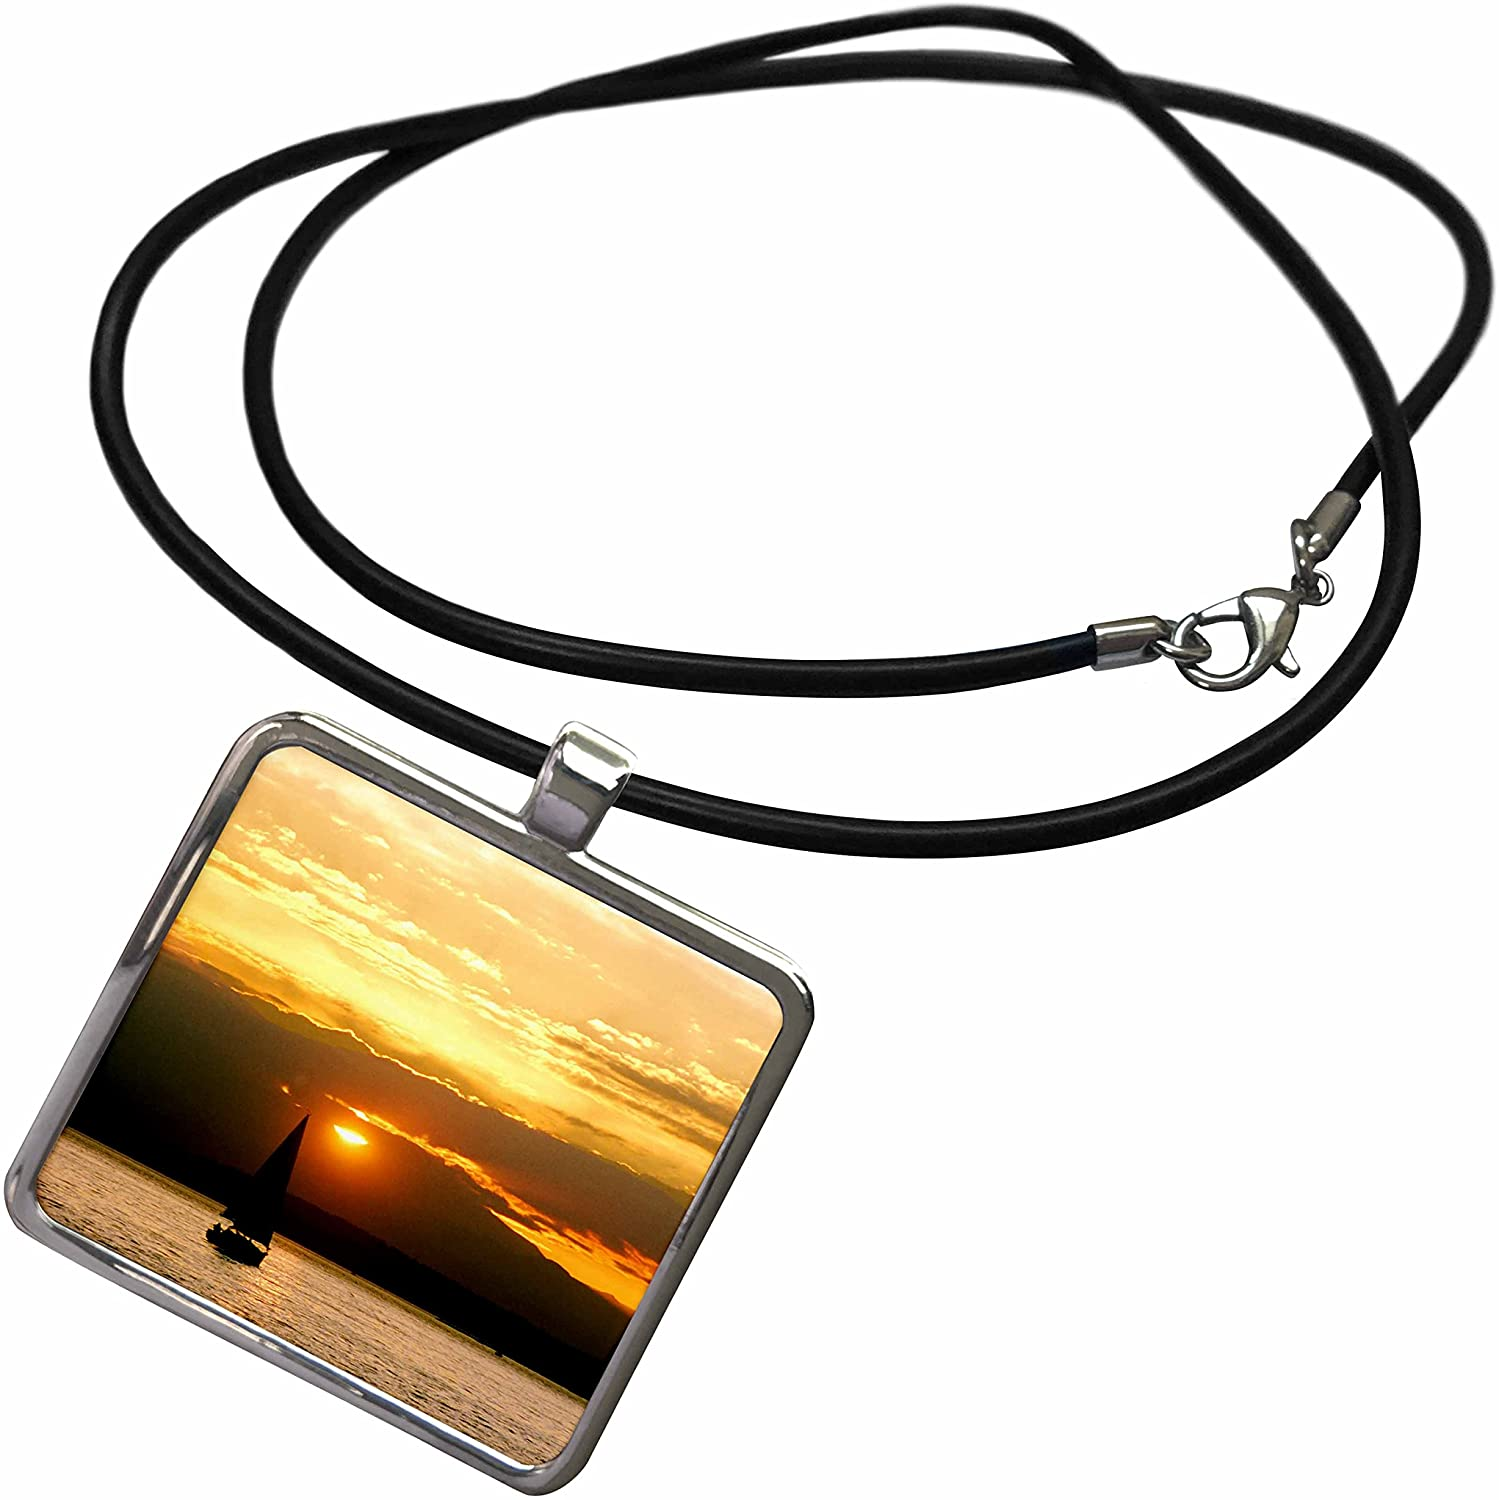 3dRose Danita Delimont - Sailing - Sailing into Setting Sun on Seattles Elliot Bay - US48 RDU0056 - Richard Duval - Necklace with Rectangle Pendant (ncl_96592)